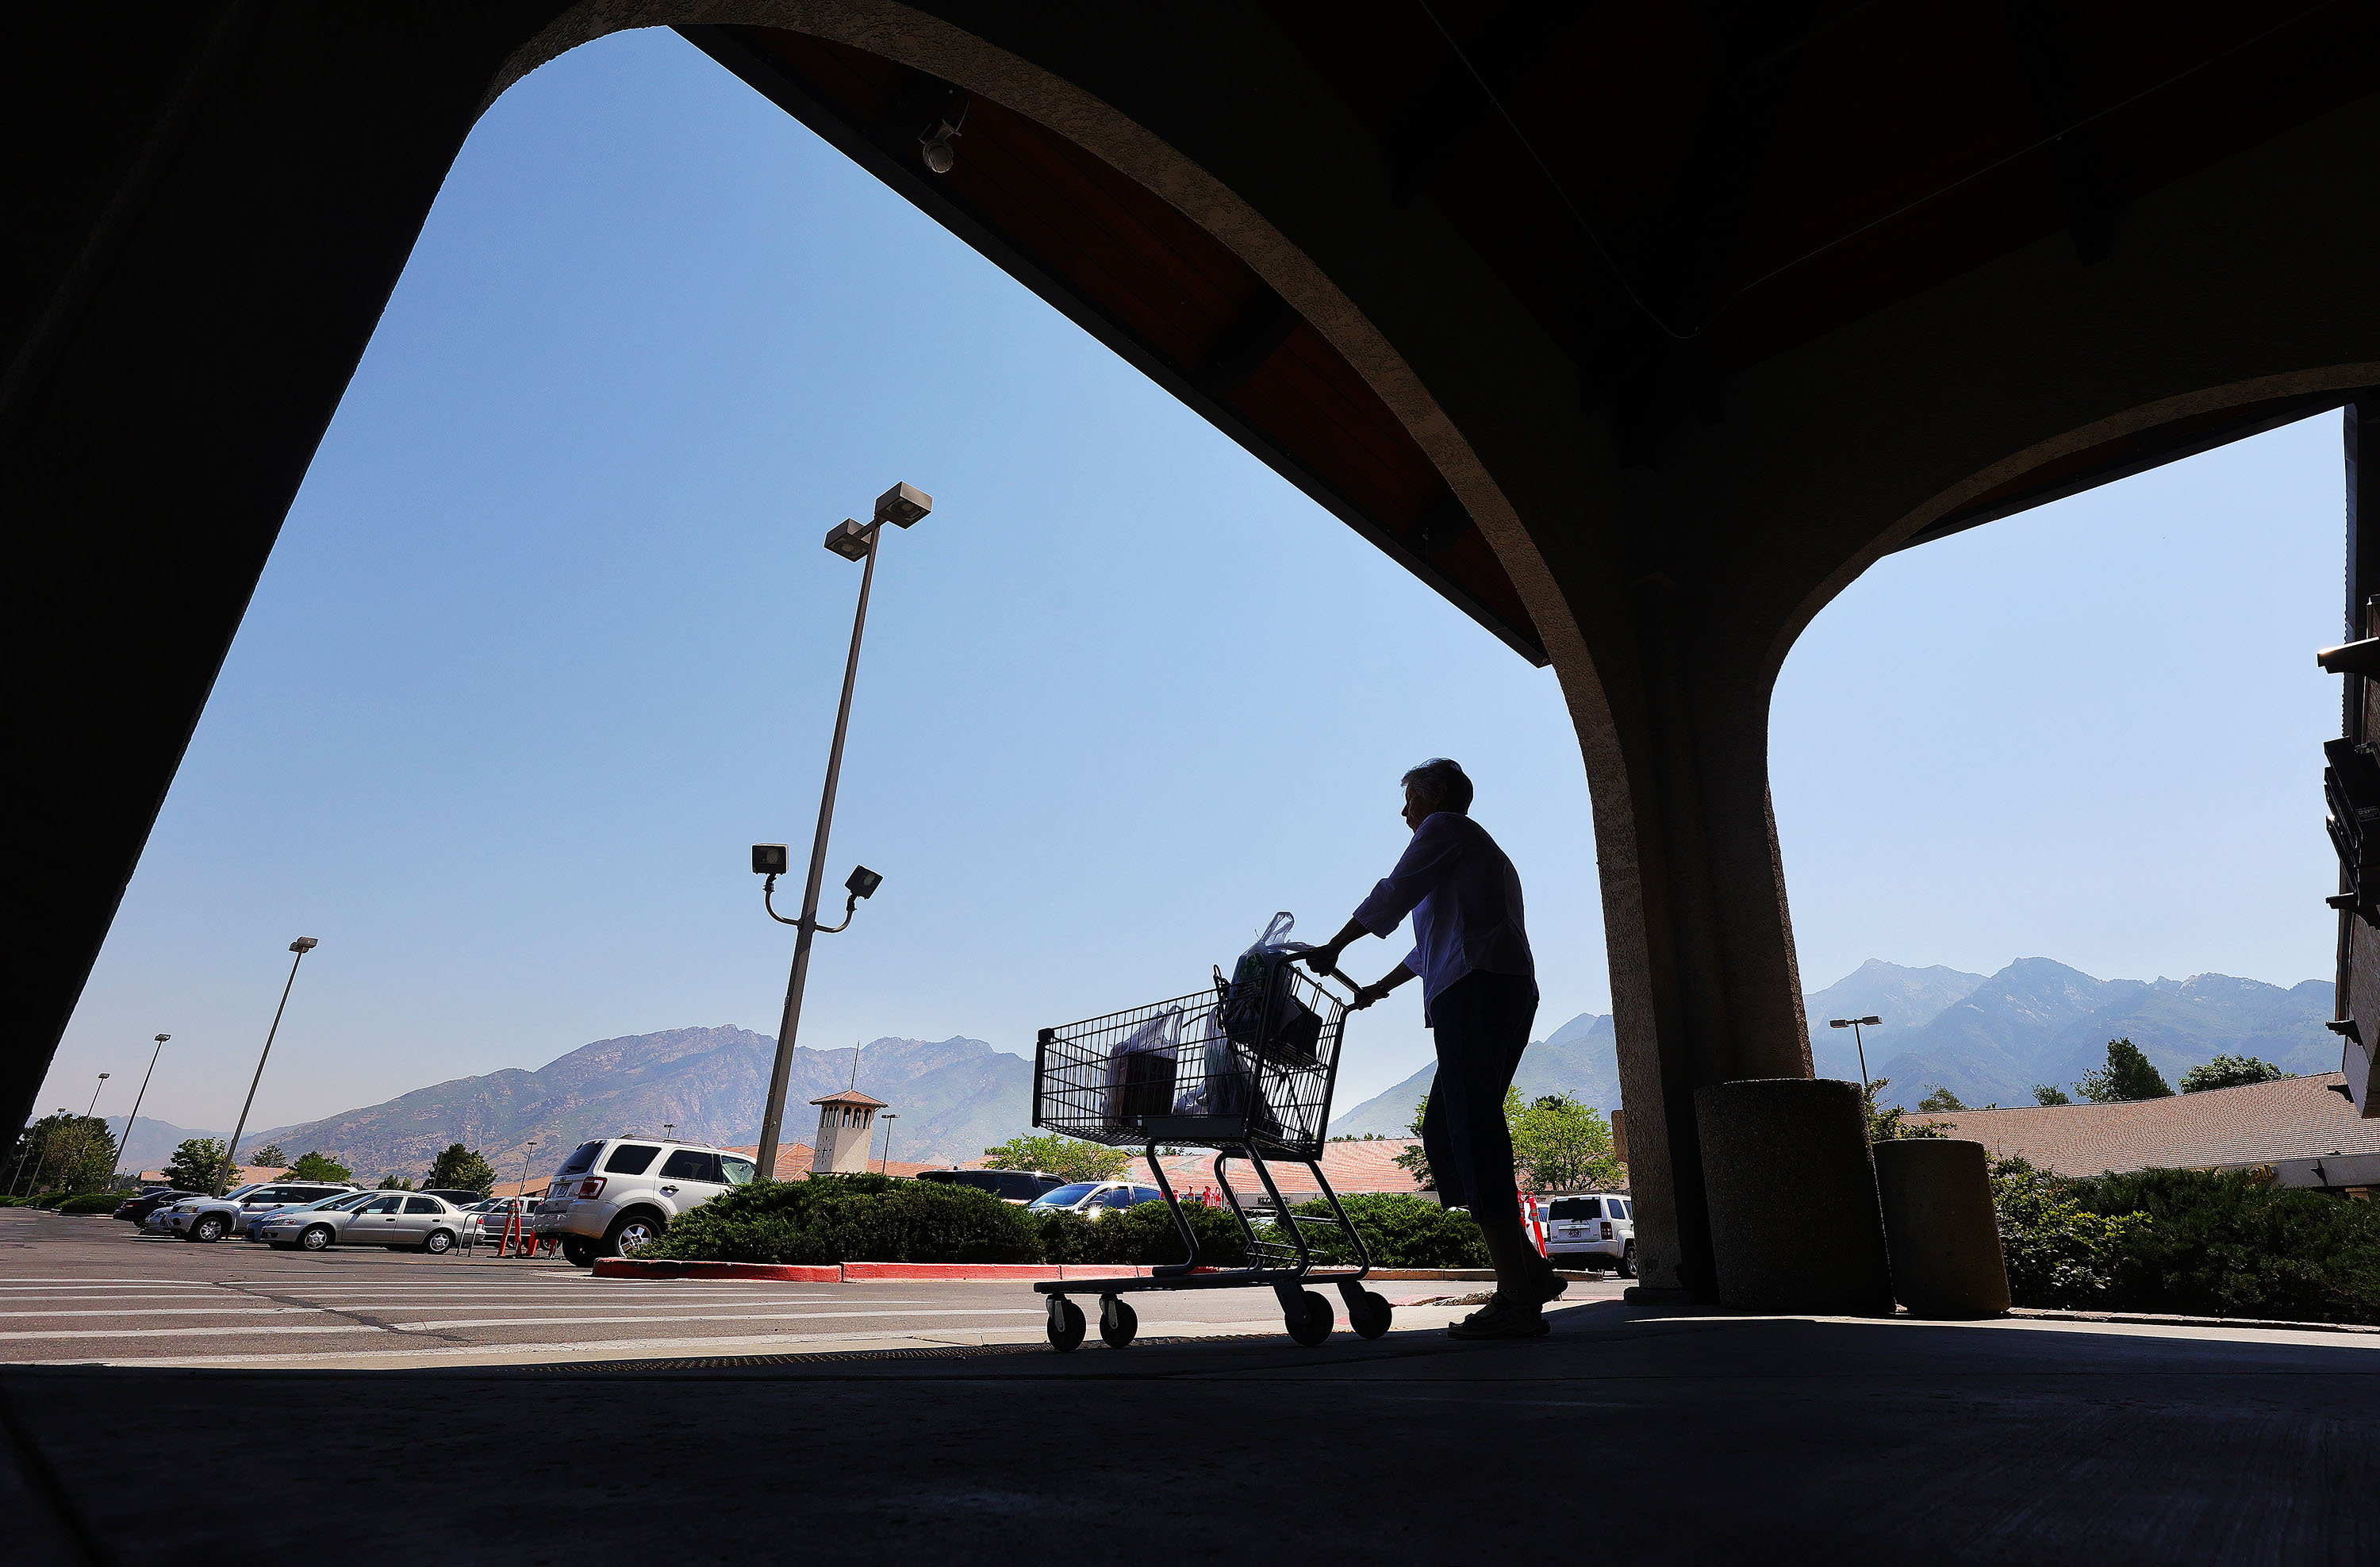 A shopper carts food to a car at Reams in Sandy on Friday, July 9, 2021. In a new Deseret News/Hinckley Institute of Politics poll, an overwhelming majority of Utahns said they were concerned about rising prices amid the economic recovery from COVID-19.